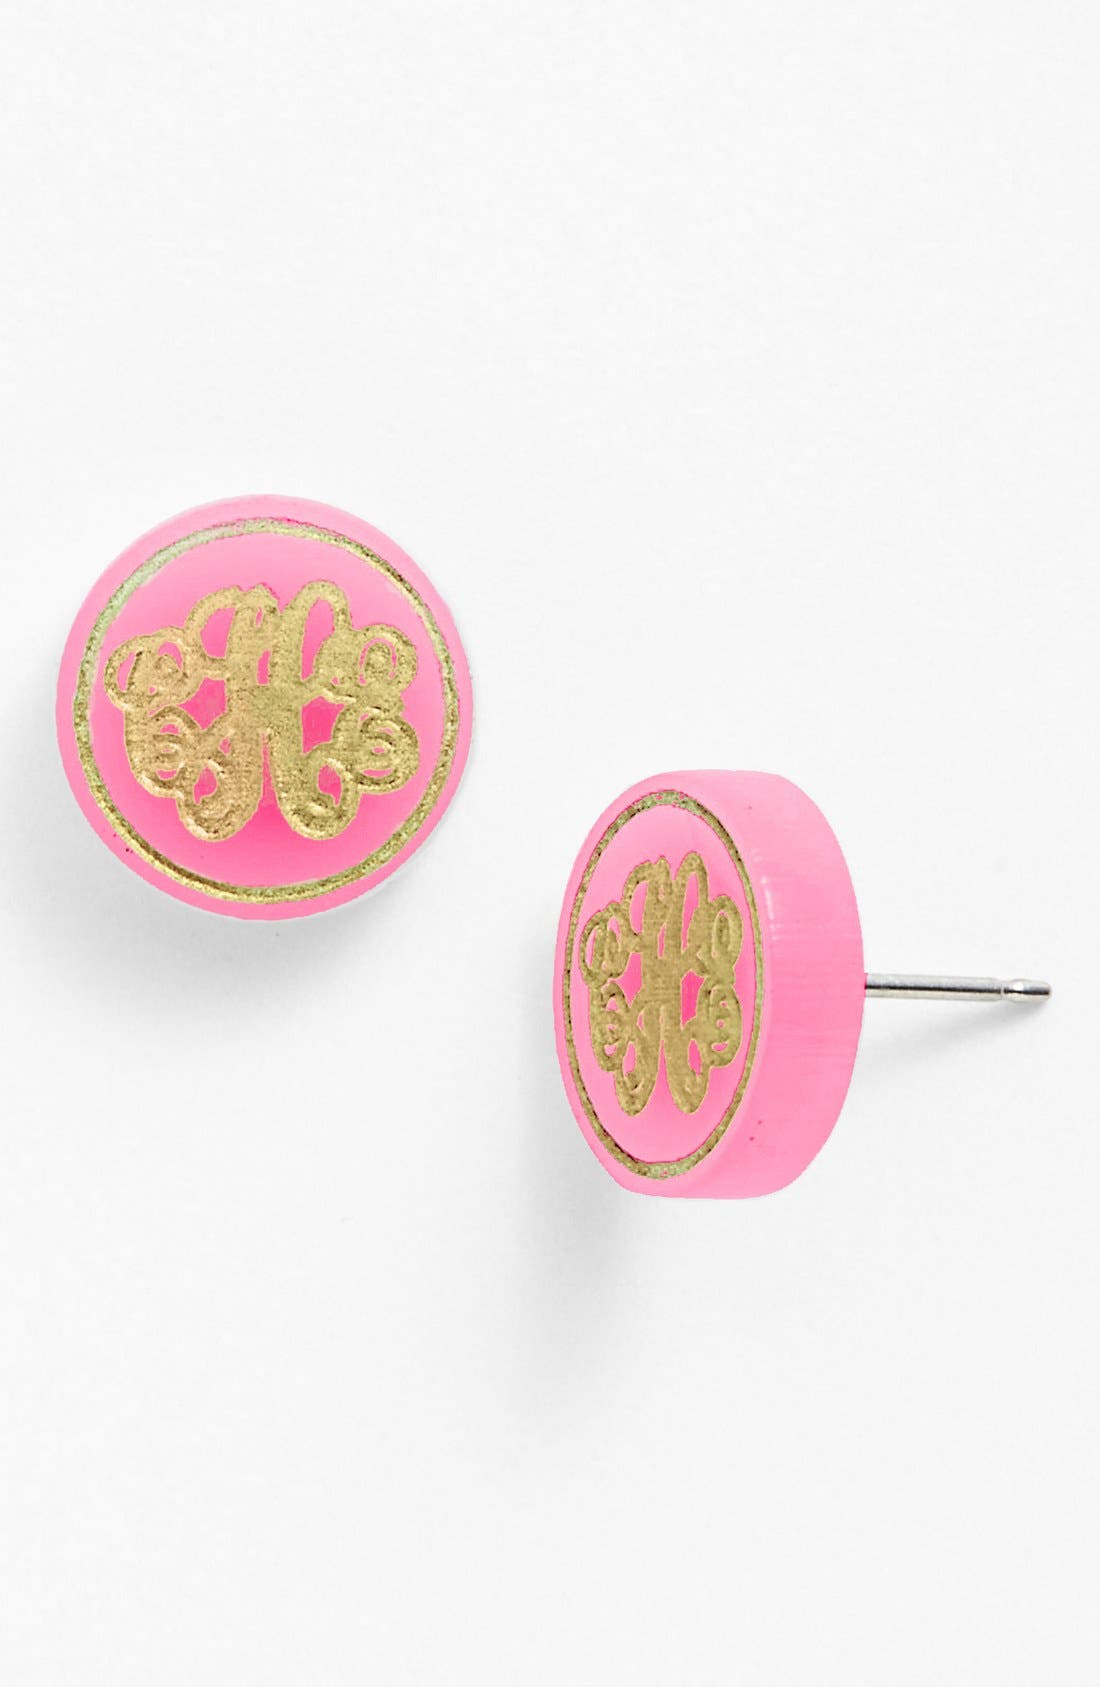 MOON AND LOLA 'Chelsea' Medium Personalized Monogram Stud Earrings (Nordstrom Exclusive) in Hot Pink/ Gold